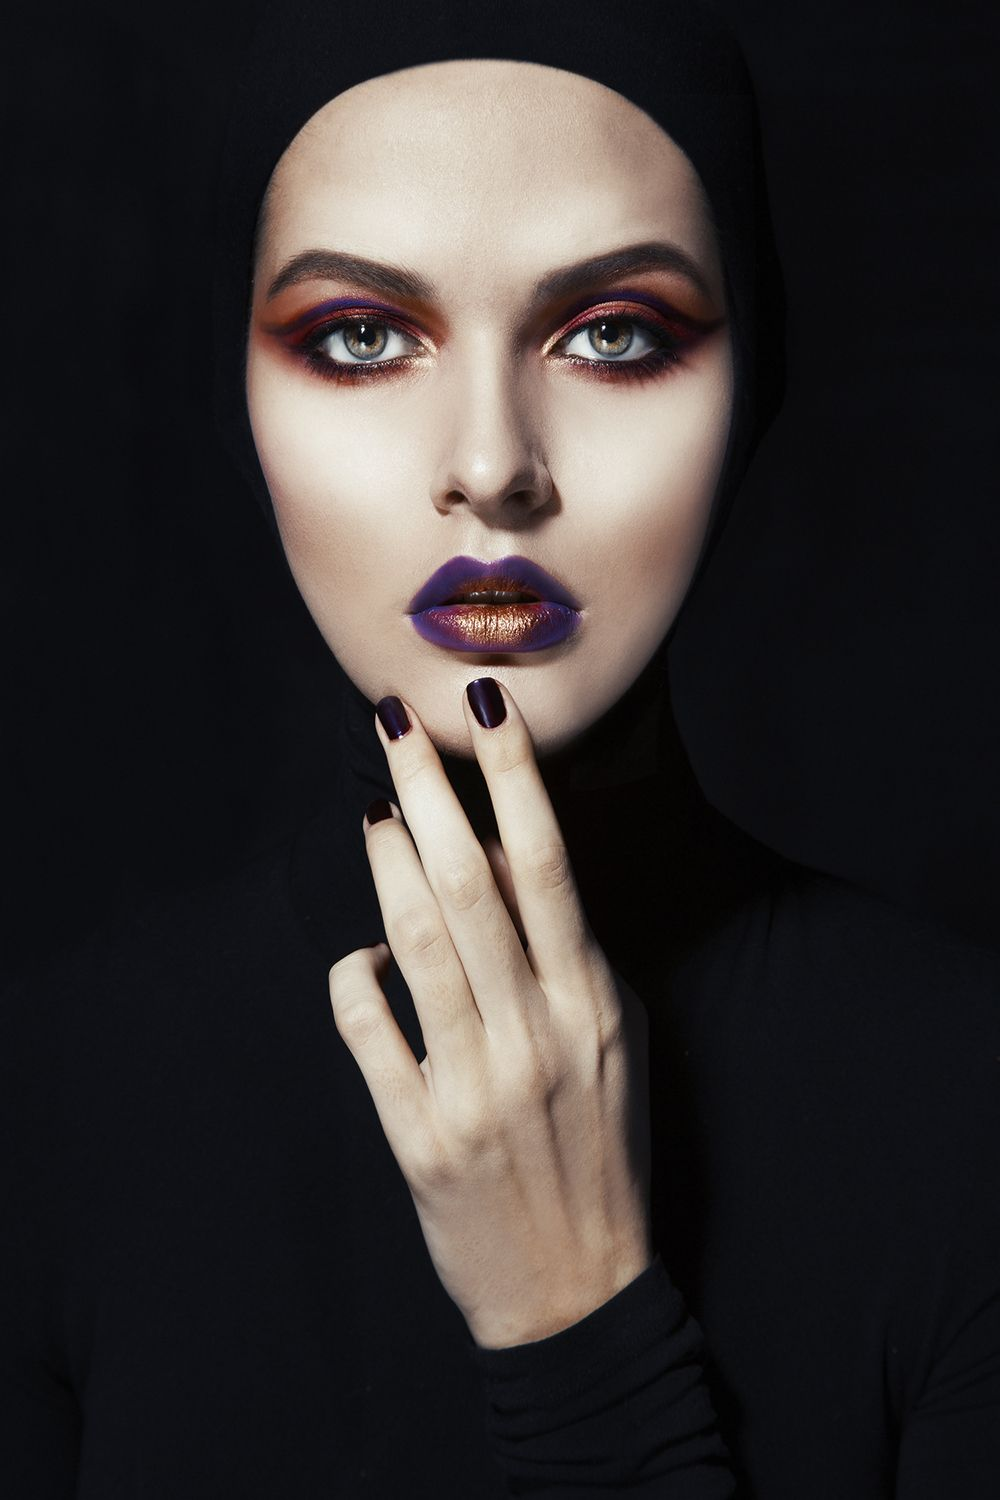 Olga Selivanova Cosmic Colors With Images Photoshoot Makeup